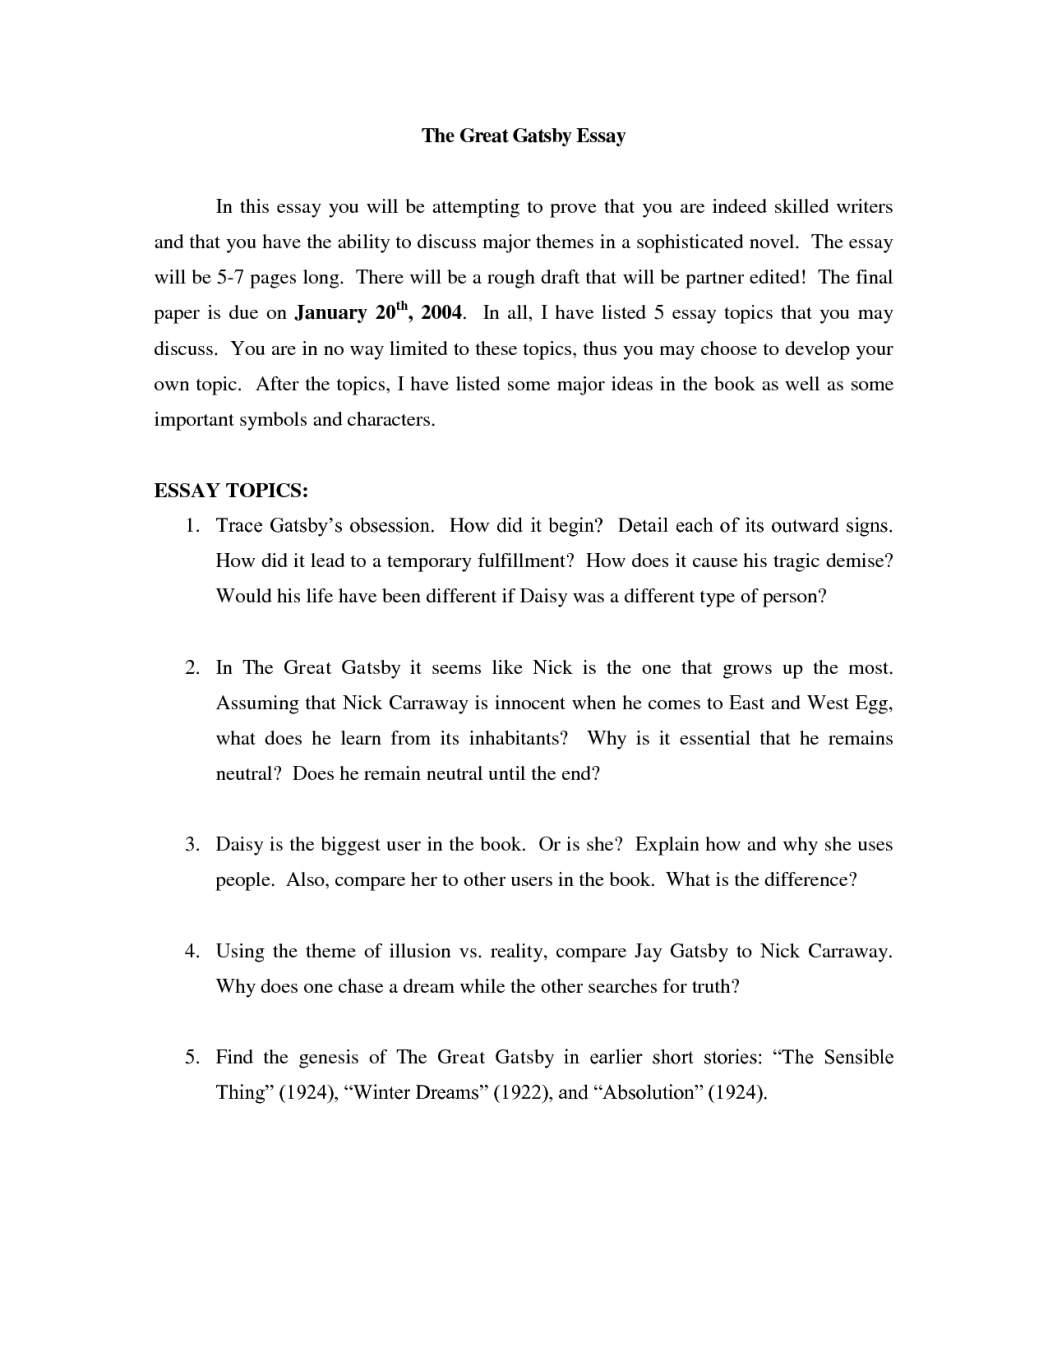 016 Essay Example Grabbers For Essays Attention Grabber Writing College Level Thesis Statement The Great Gatsby Template 4ni Examples Of Expository Persuasive Imposing Good Interesting Full